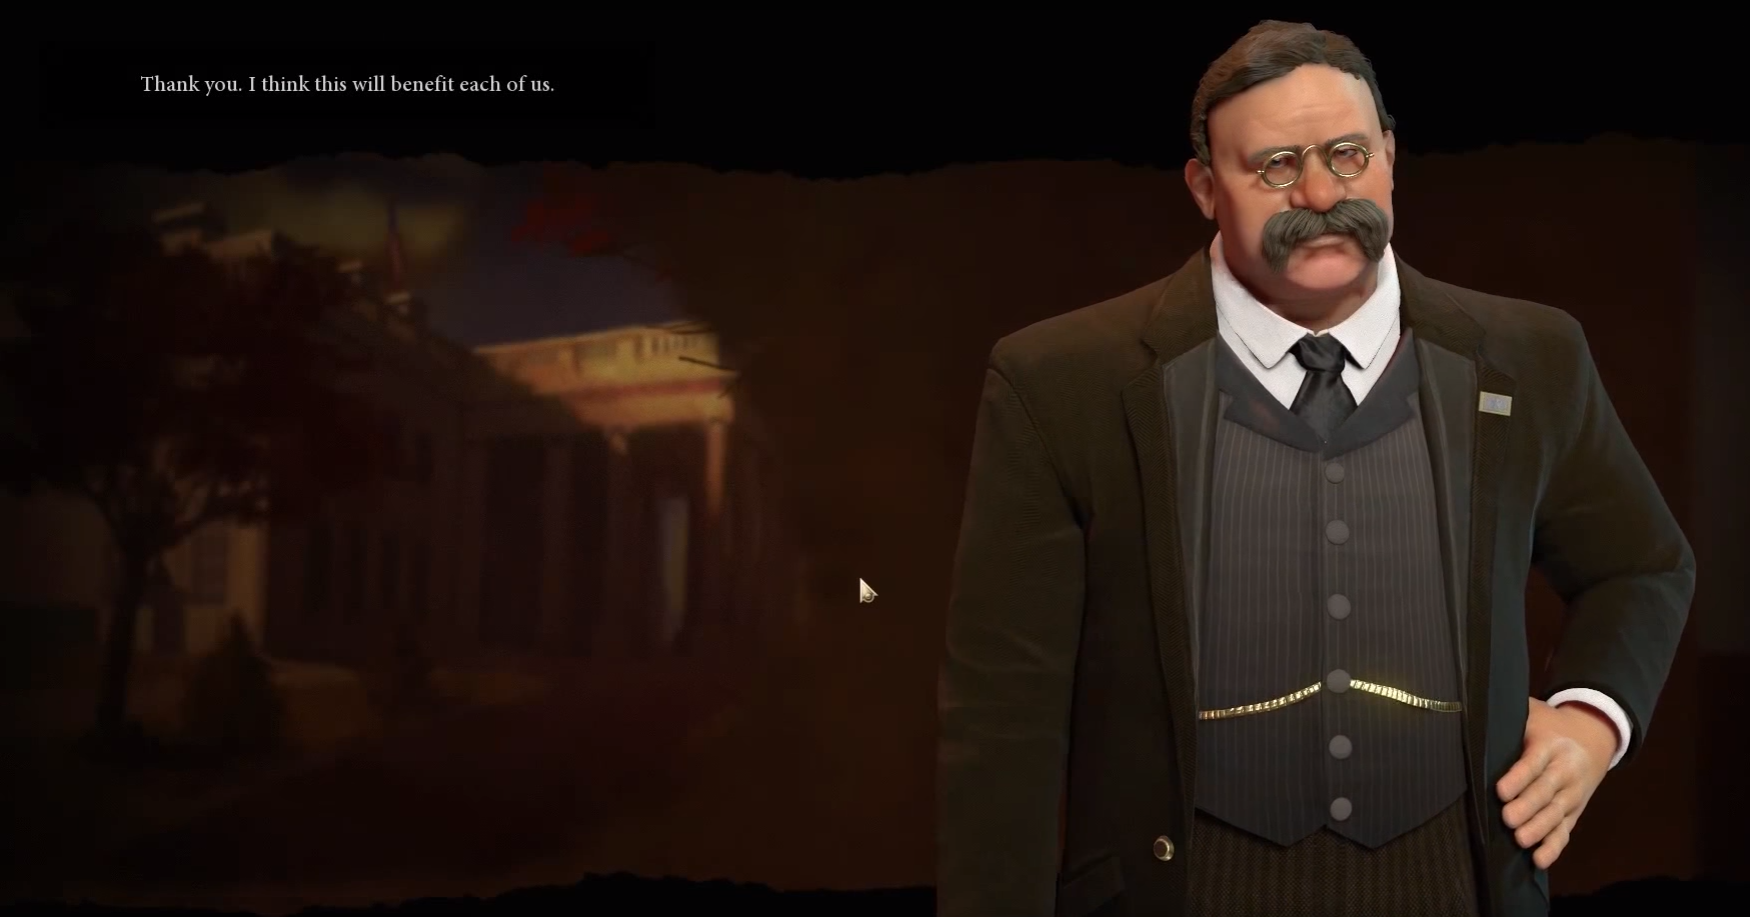 Teddy Roosevelt Civ 6 Leader After Feedback